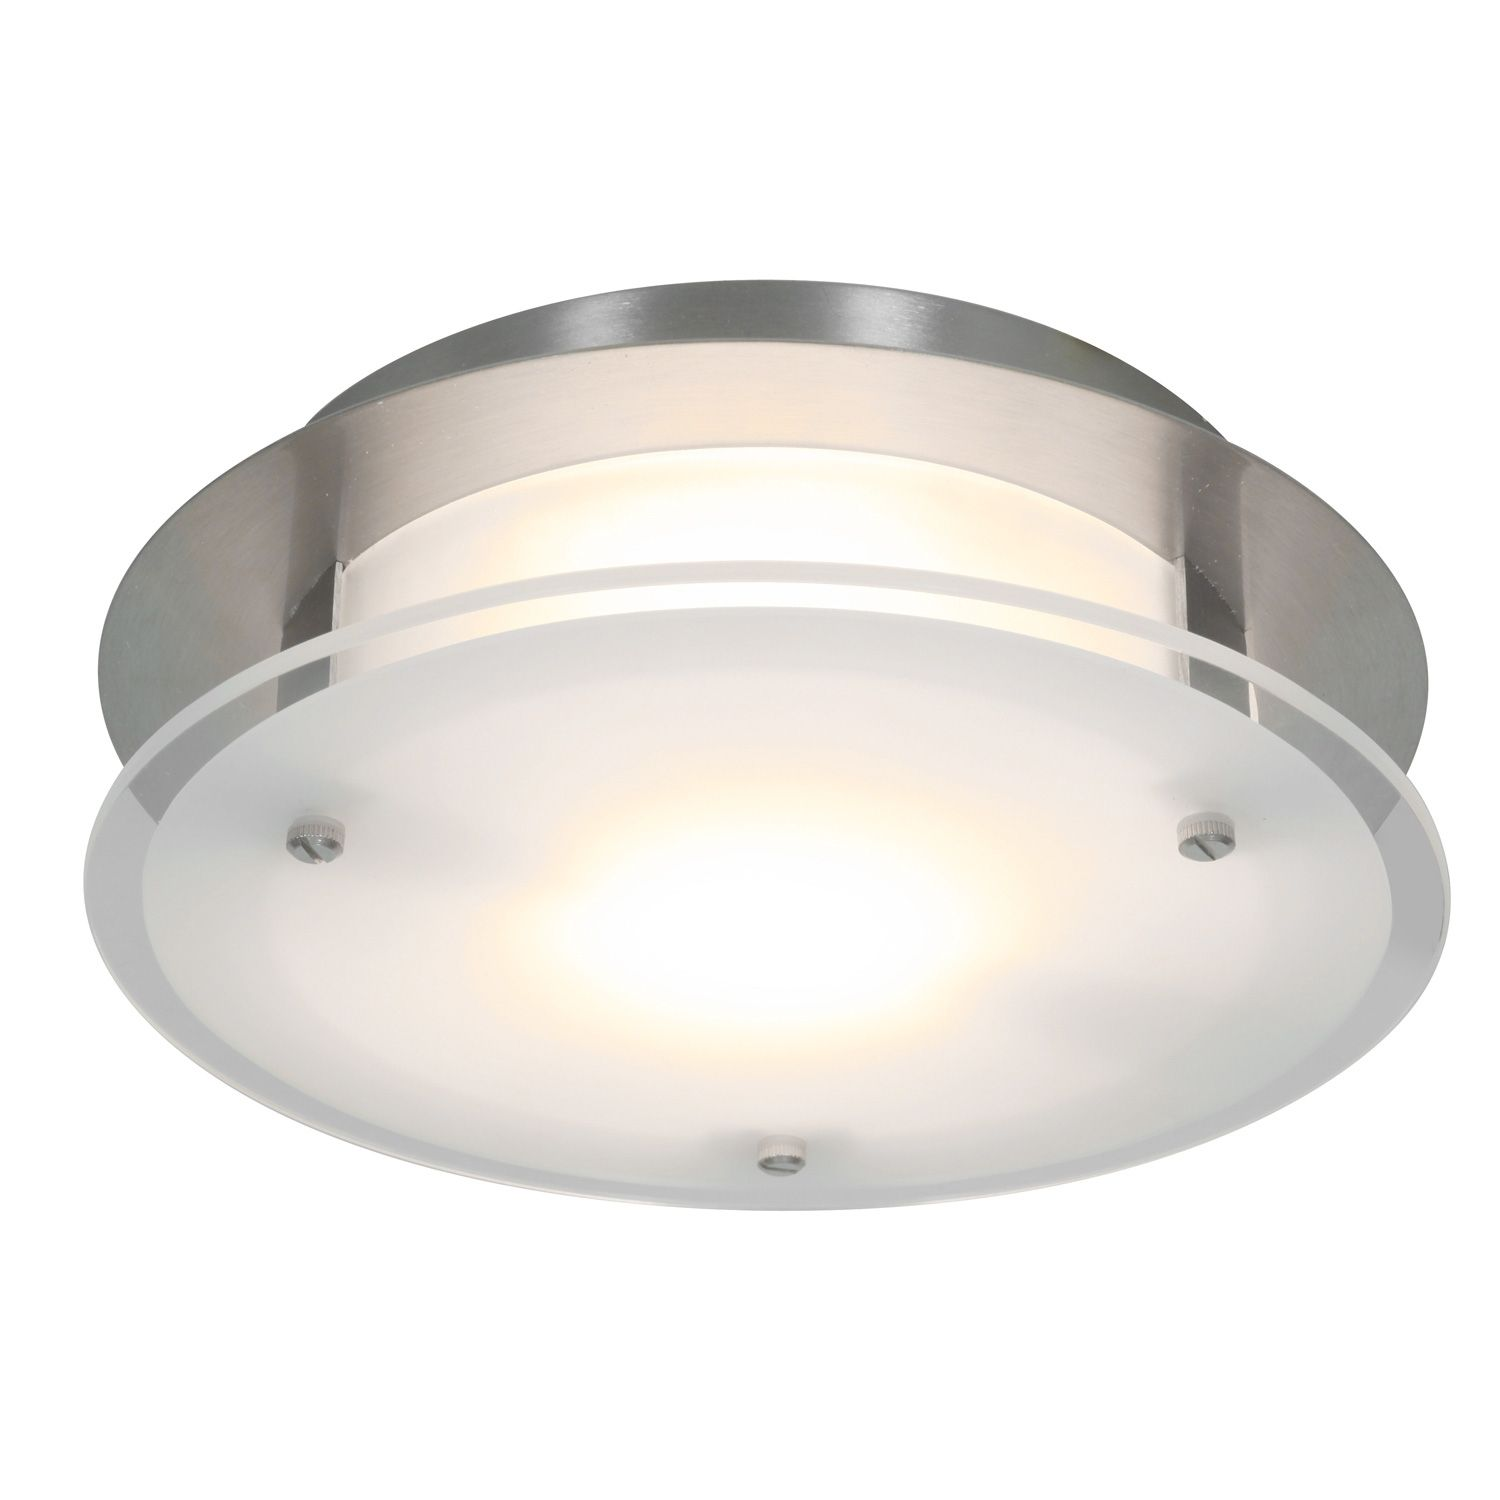 Superior Bathroom Ceiling Heater Fan Light